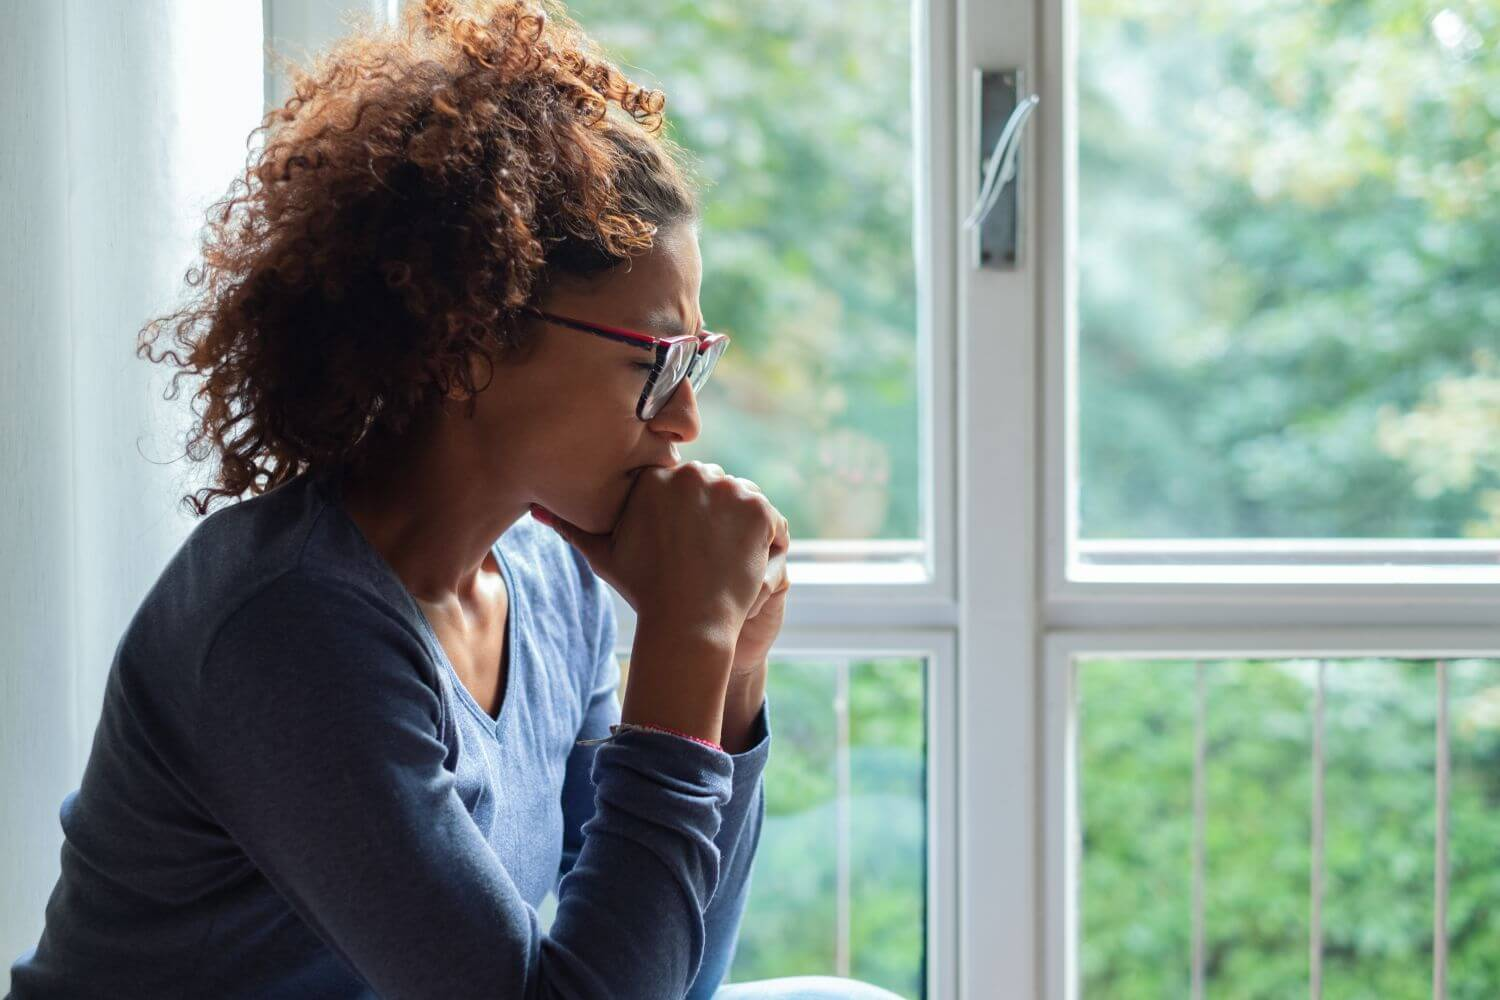 Empty nester by window pondering God's purpose for her life